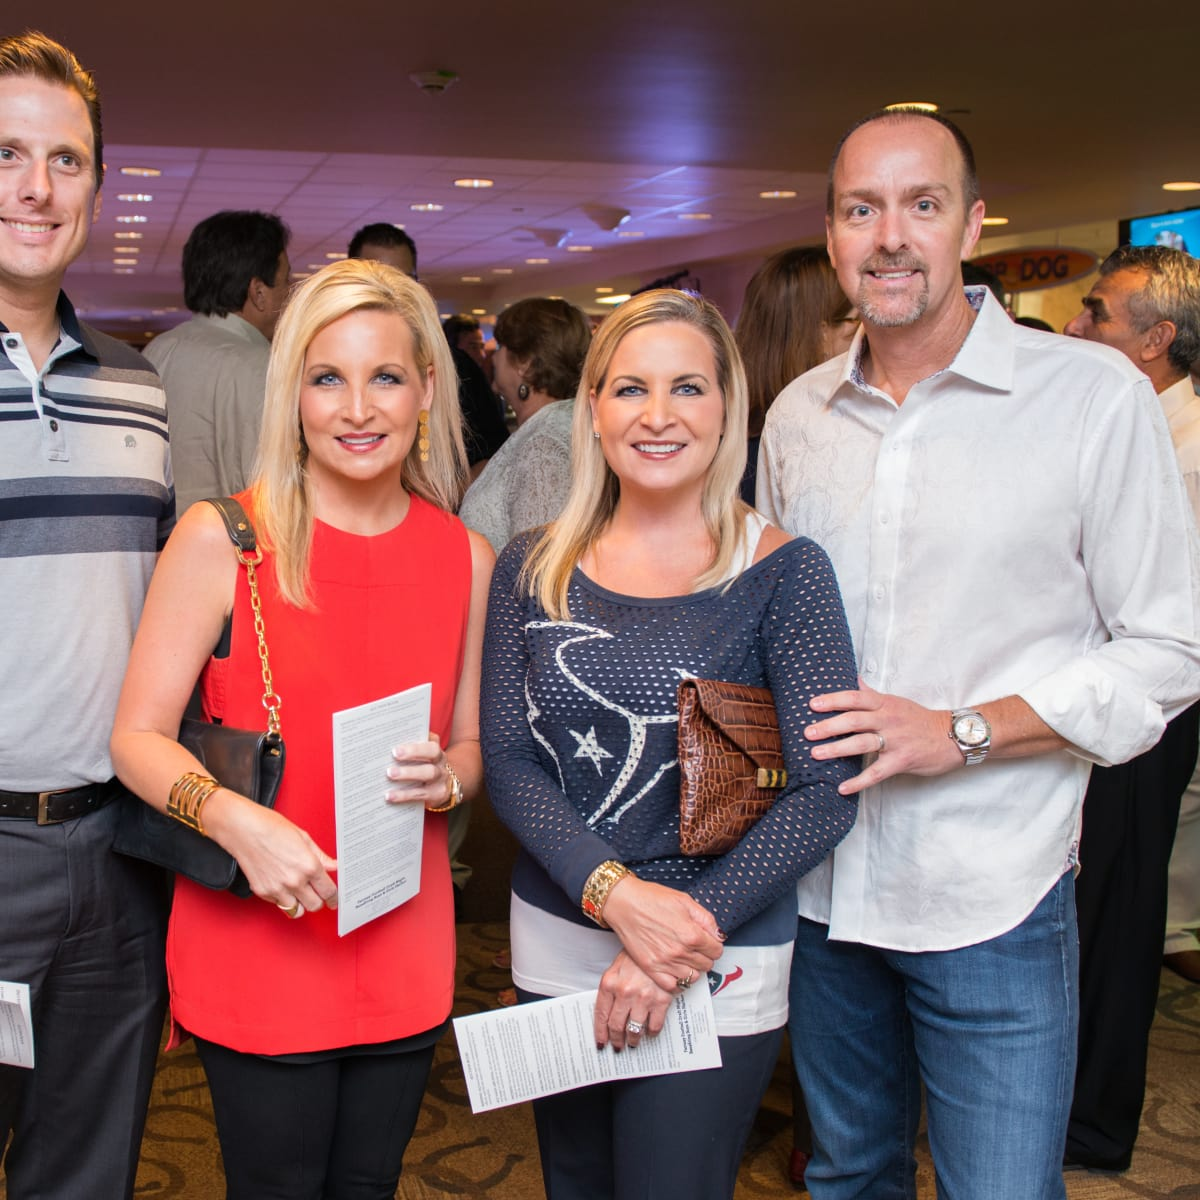 Fantasy Football draft 2015 Drew Miller, Lynda Irvine, Laura and Wayne Kinningham